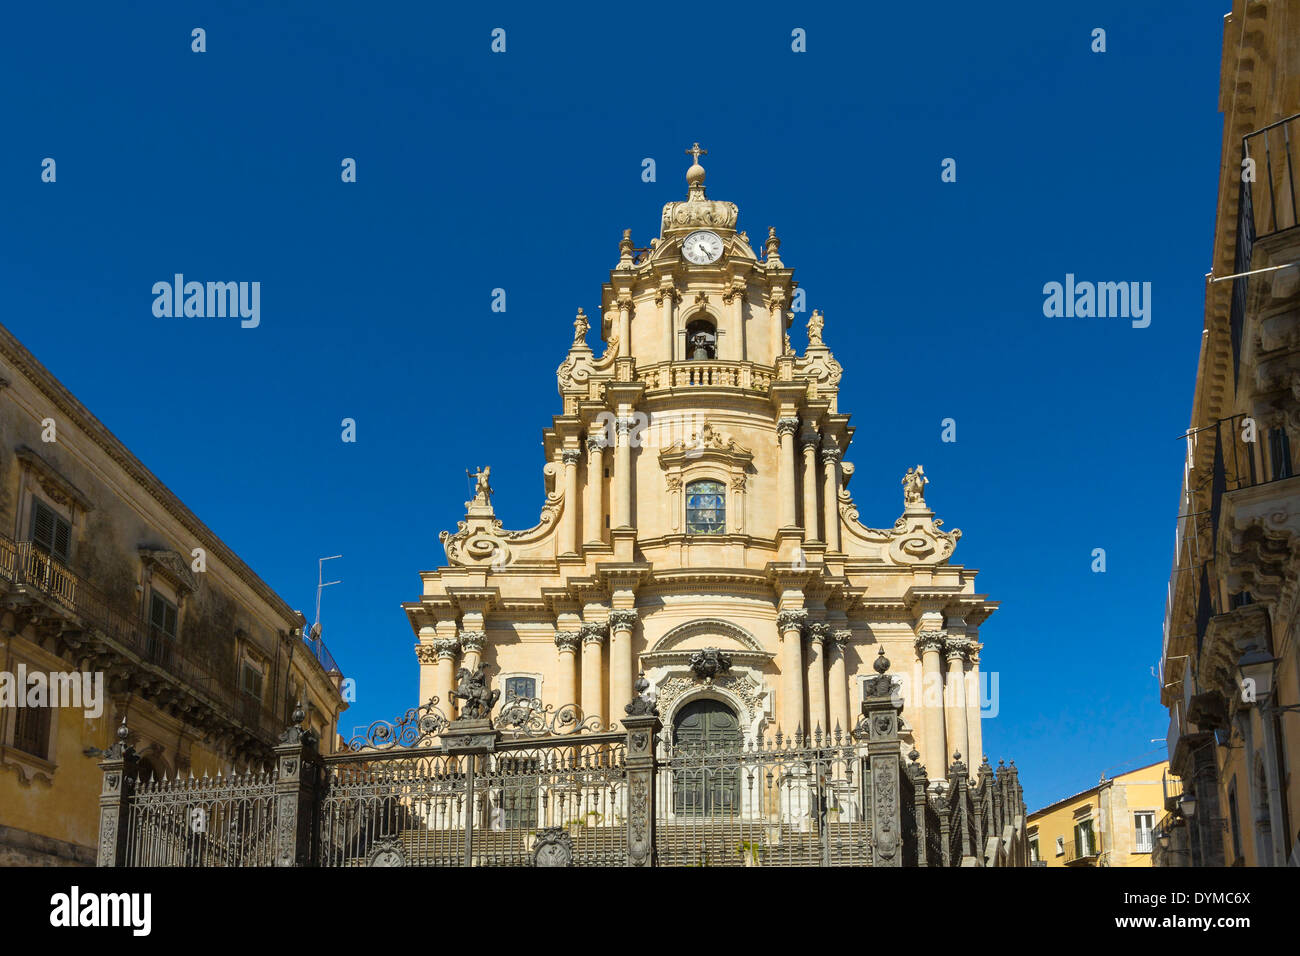 San Giorgio Cathedral (1738) at this World Heritage Sicilian Baroque architecture city; Ragusa, Ragusa Province, Sicily, Italy - Stock Image